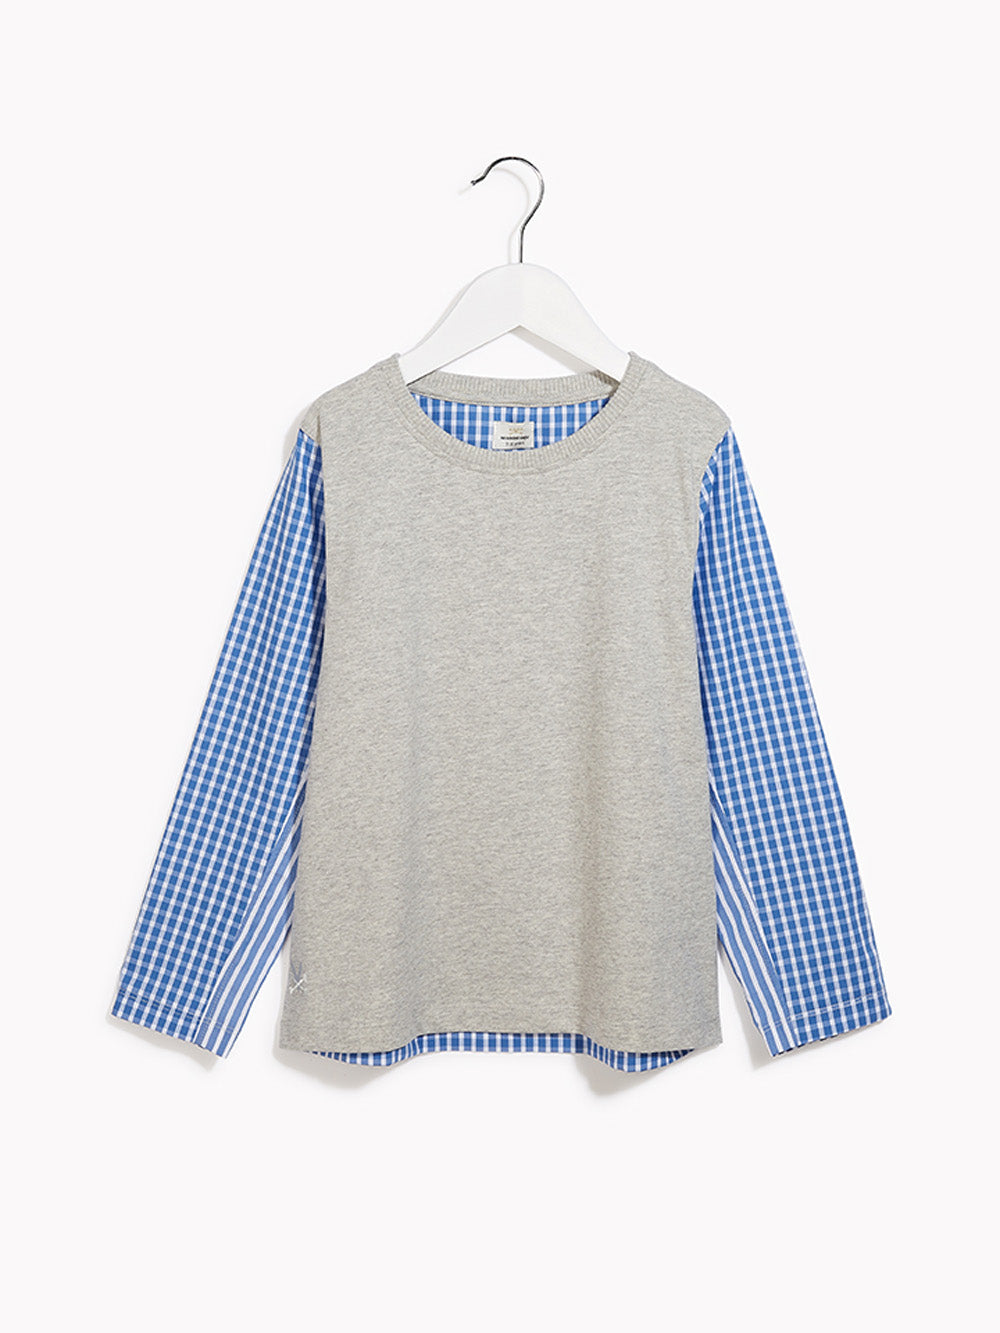 Boys Smart Long Sleeved Top - Shirt Sleeves Grey Marl & Biro Blue Stripe T-shirt